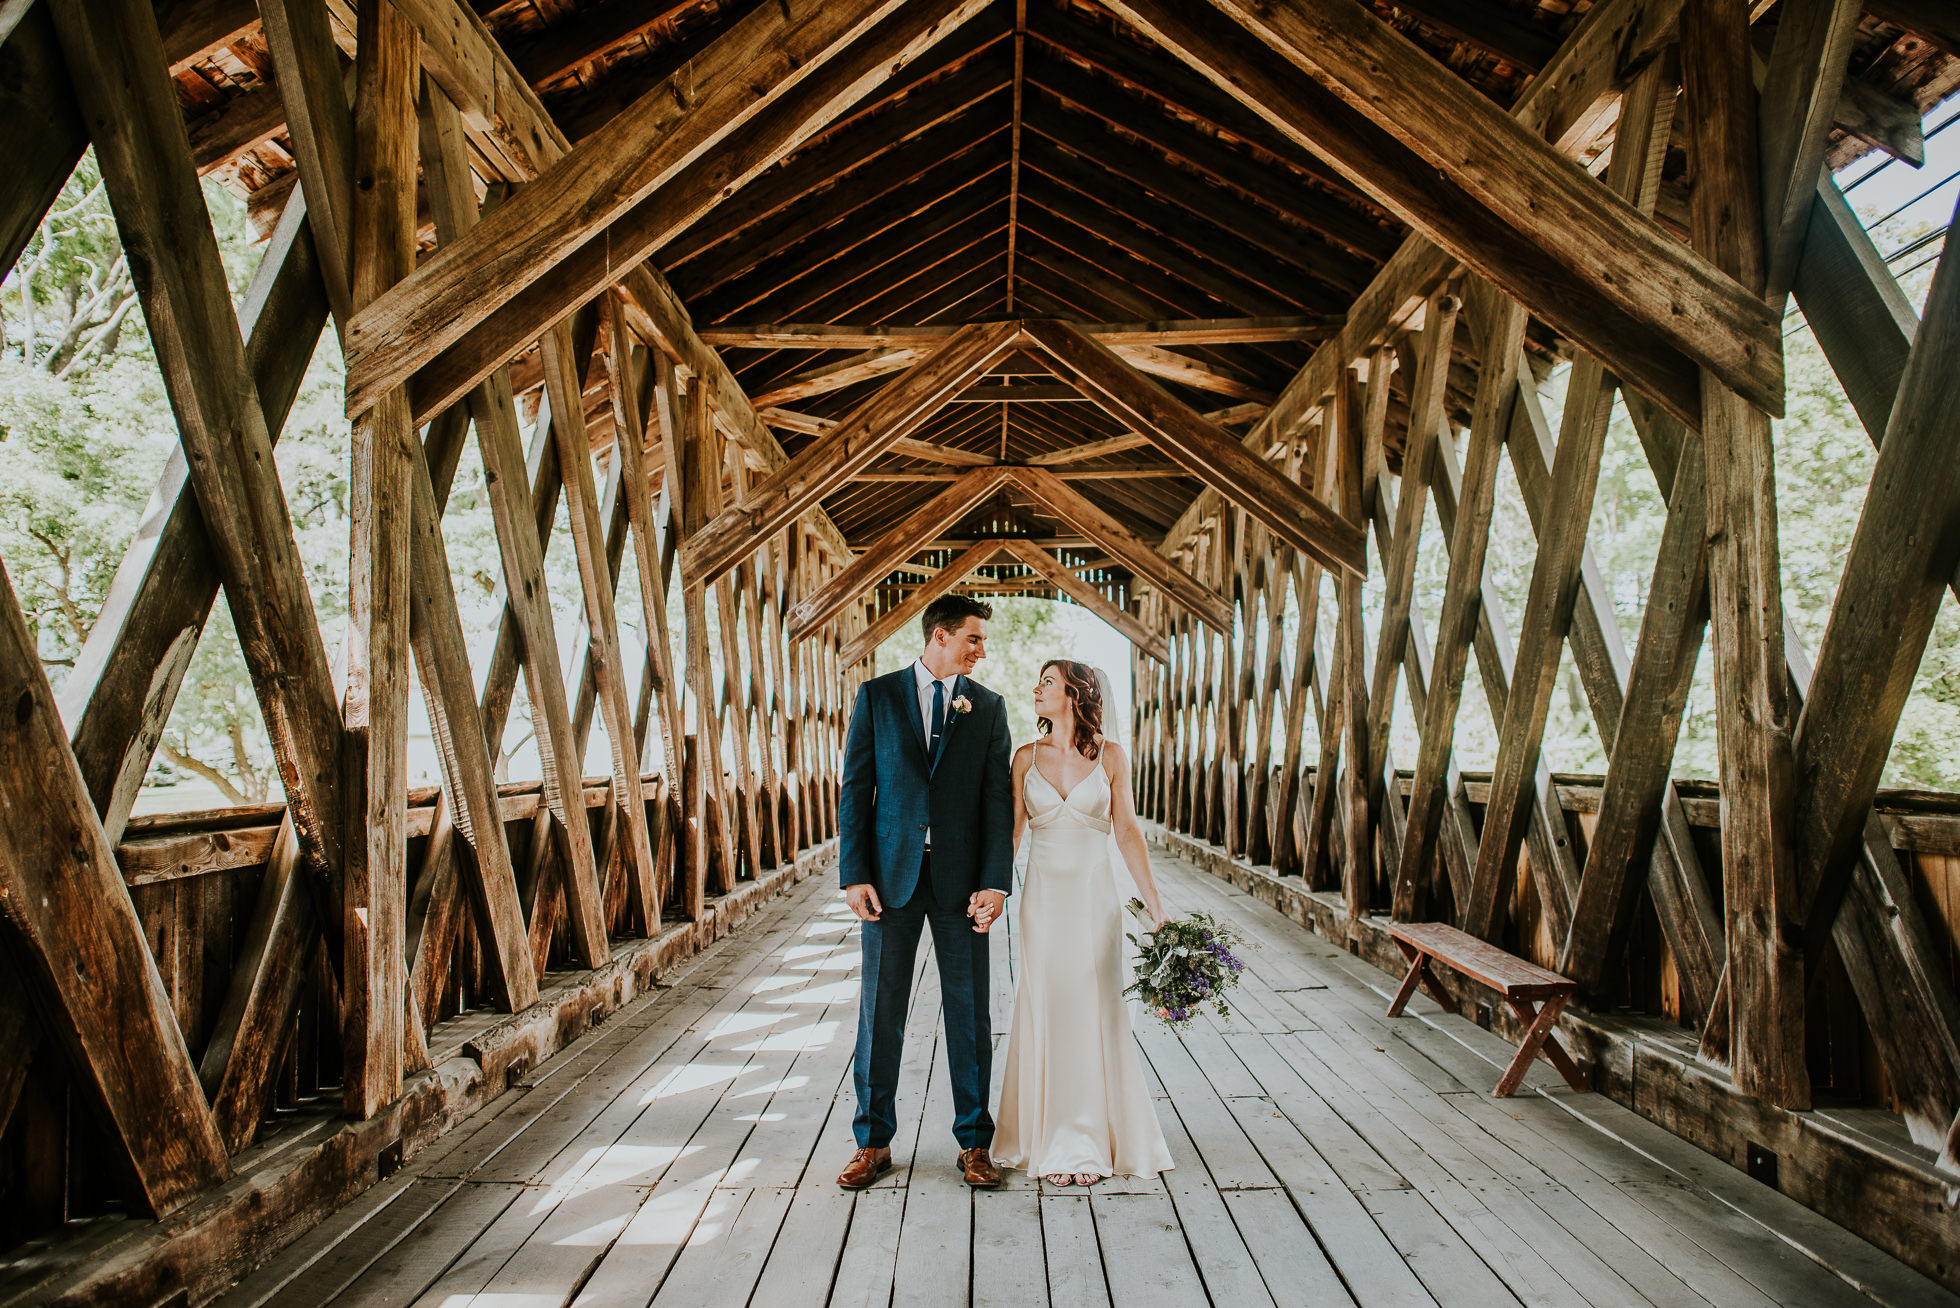 bride and groom portrait on bridge at olde tater barn wedding in central bridge, ny photographed by traverse the tides